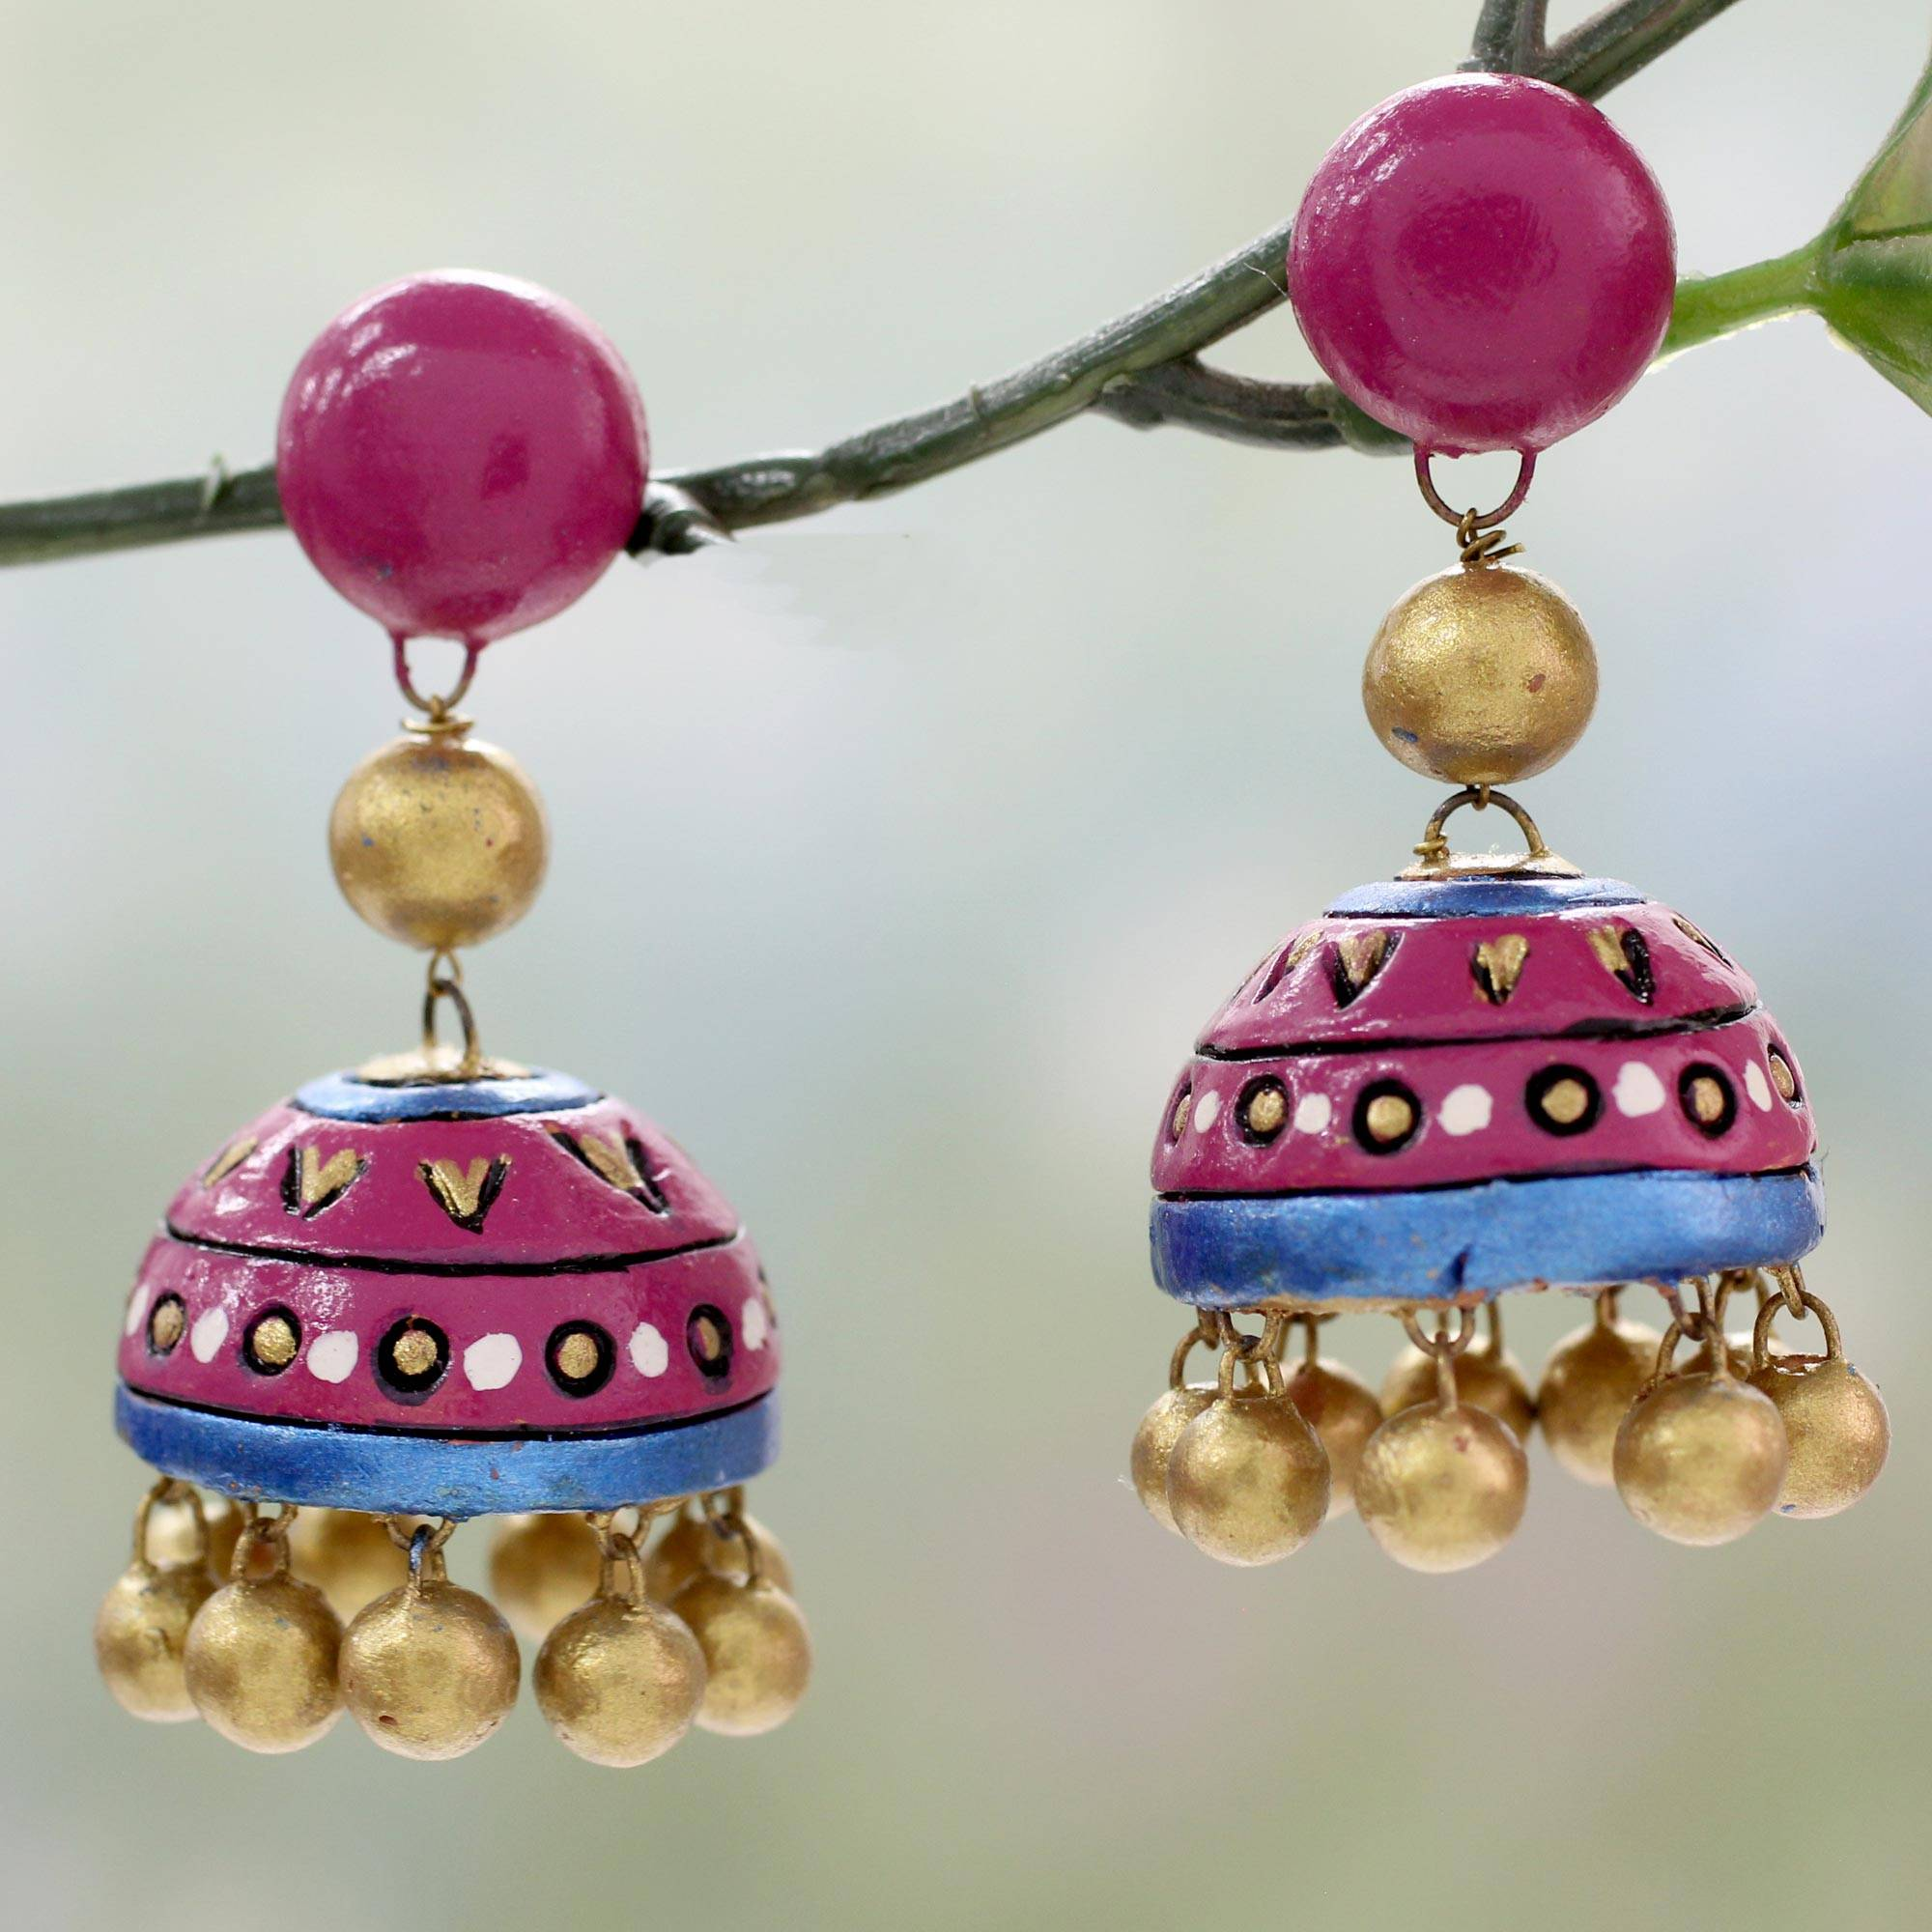 Pleasing Novica  Parasol With Engaging Ceramic Dangle Earrings Pink Harmony  Handcrafted Ceramic Dangle  Earrings In Pink And With Attractive China Garden Colne Also Great Notley Garden Village In Addition Teak Garden Table And Garden Stone Features As Well As Gravel Garden Designs Additionally Garden Party Buckingham Palace From Novicacom With   Engaging Novica  Parasol With Attractive Ceramic Dangle Earrings Pink Harmony  Handcrafted Ceramic Dangle  Earrings In Pink And And Pleasing China Garden Colne Also Great Notley Garden Village In Addition Teak Garden Table From Novicacom